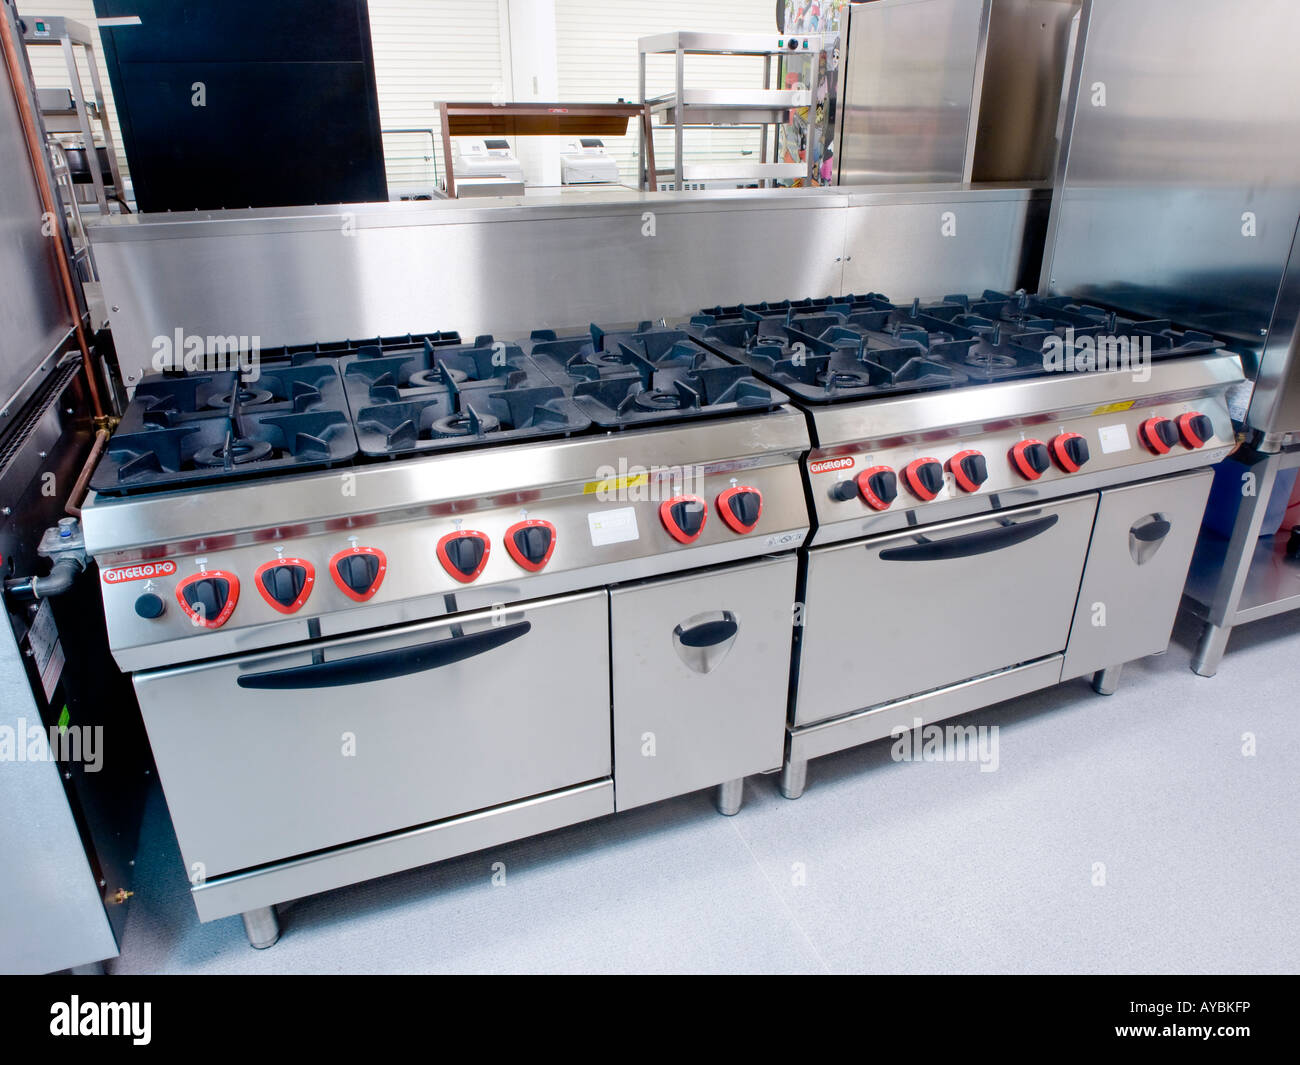 Commercial cooking range Stock Photo: 17057001 - Alamy